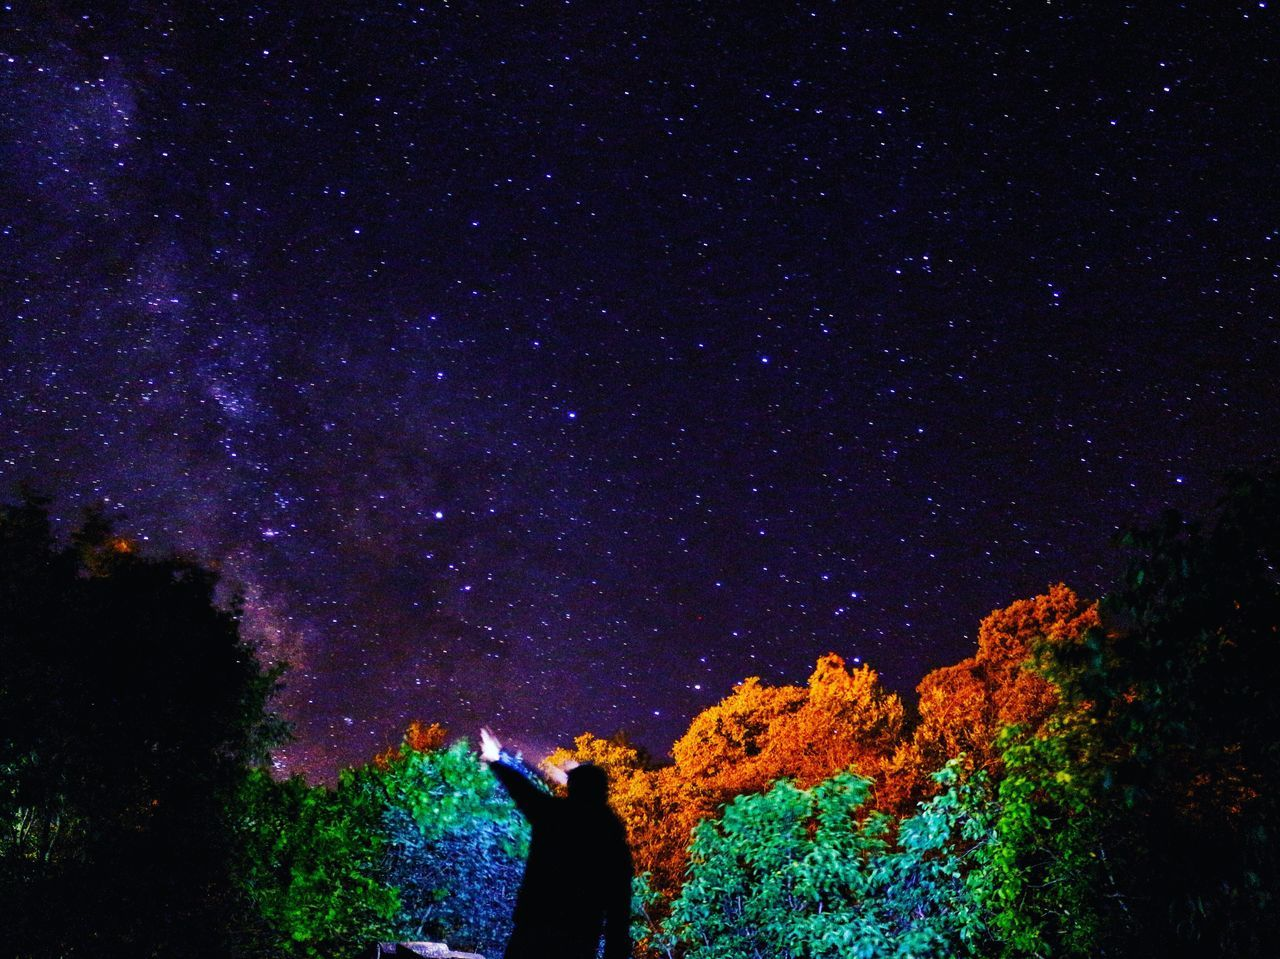 EyeEm Selects EyeEmNewHere Night Nature Real People Star - Space Beauty In Nature Outdoors Astronomy Tree Scenics Low Angle View Silhouette Star Field Sky Lifestyles Starry One Person Galaxy People Neon Life